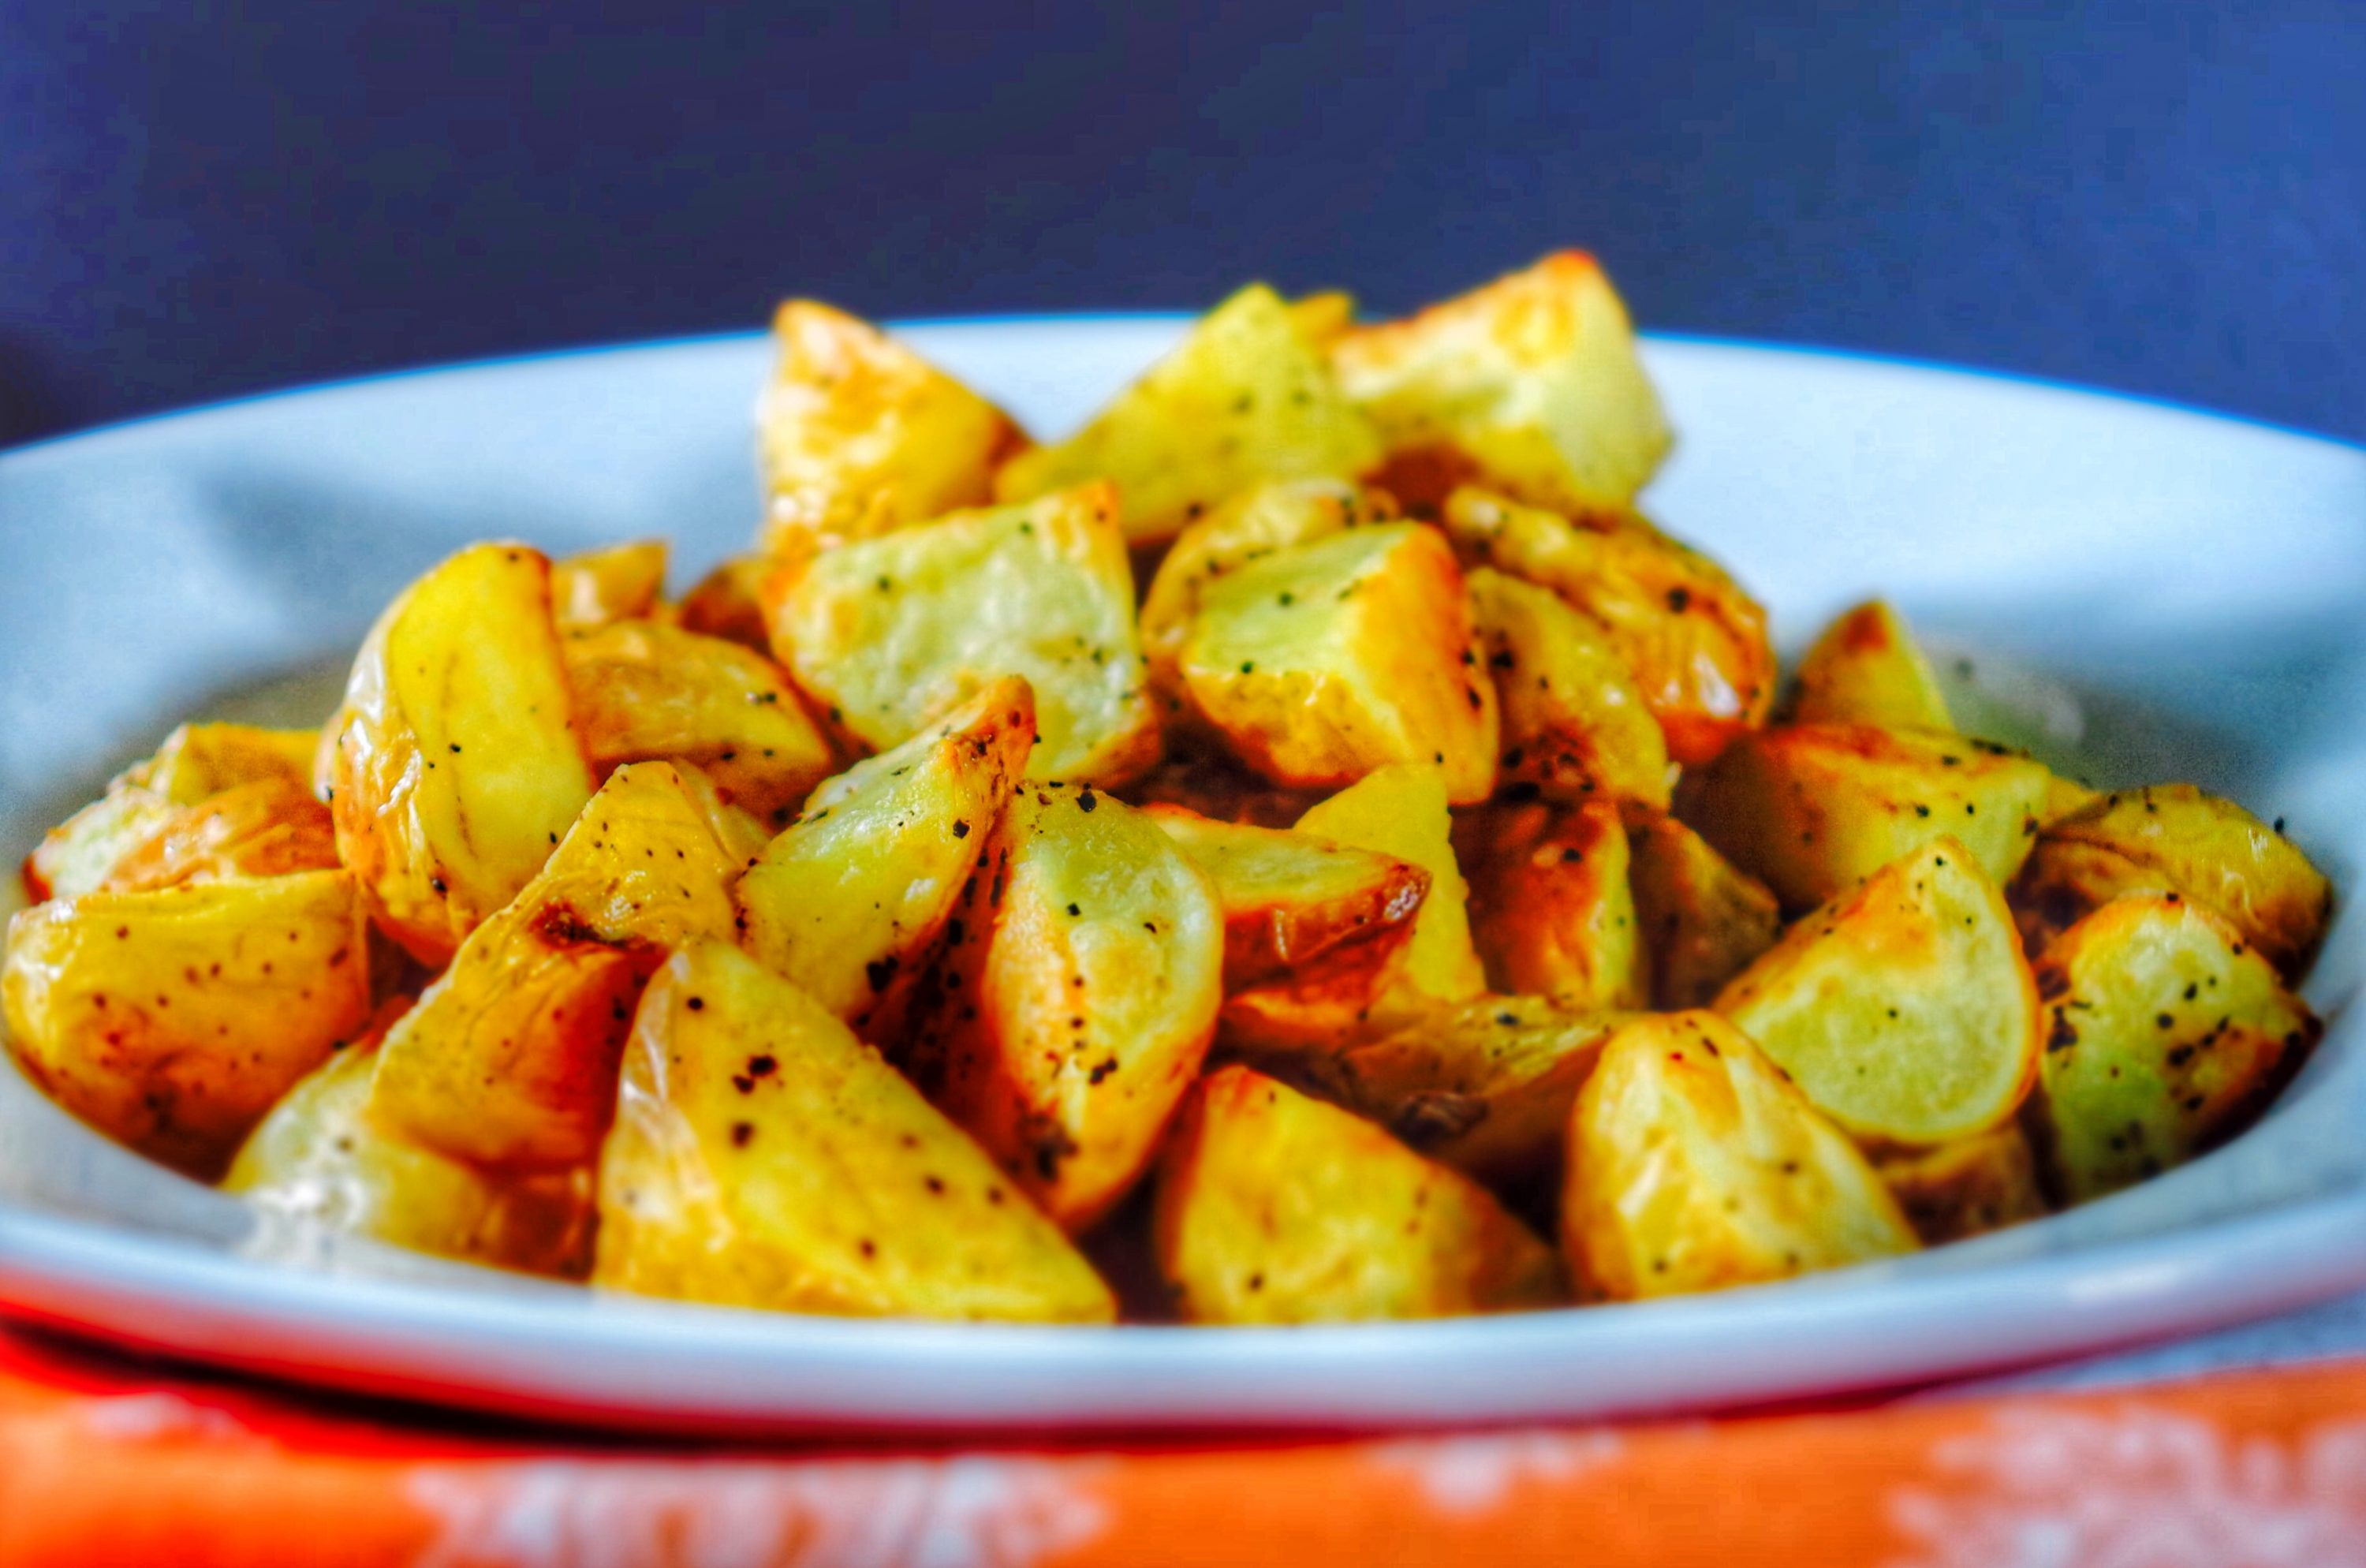 Perfectly Roasted Potatoes!